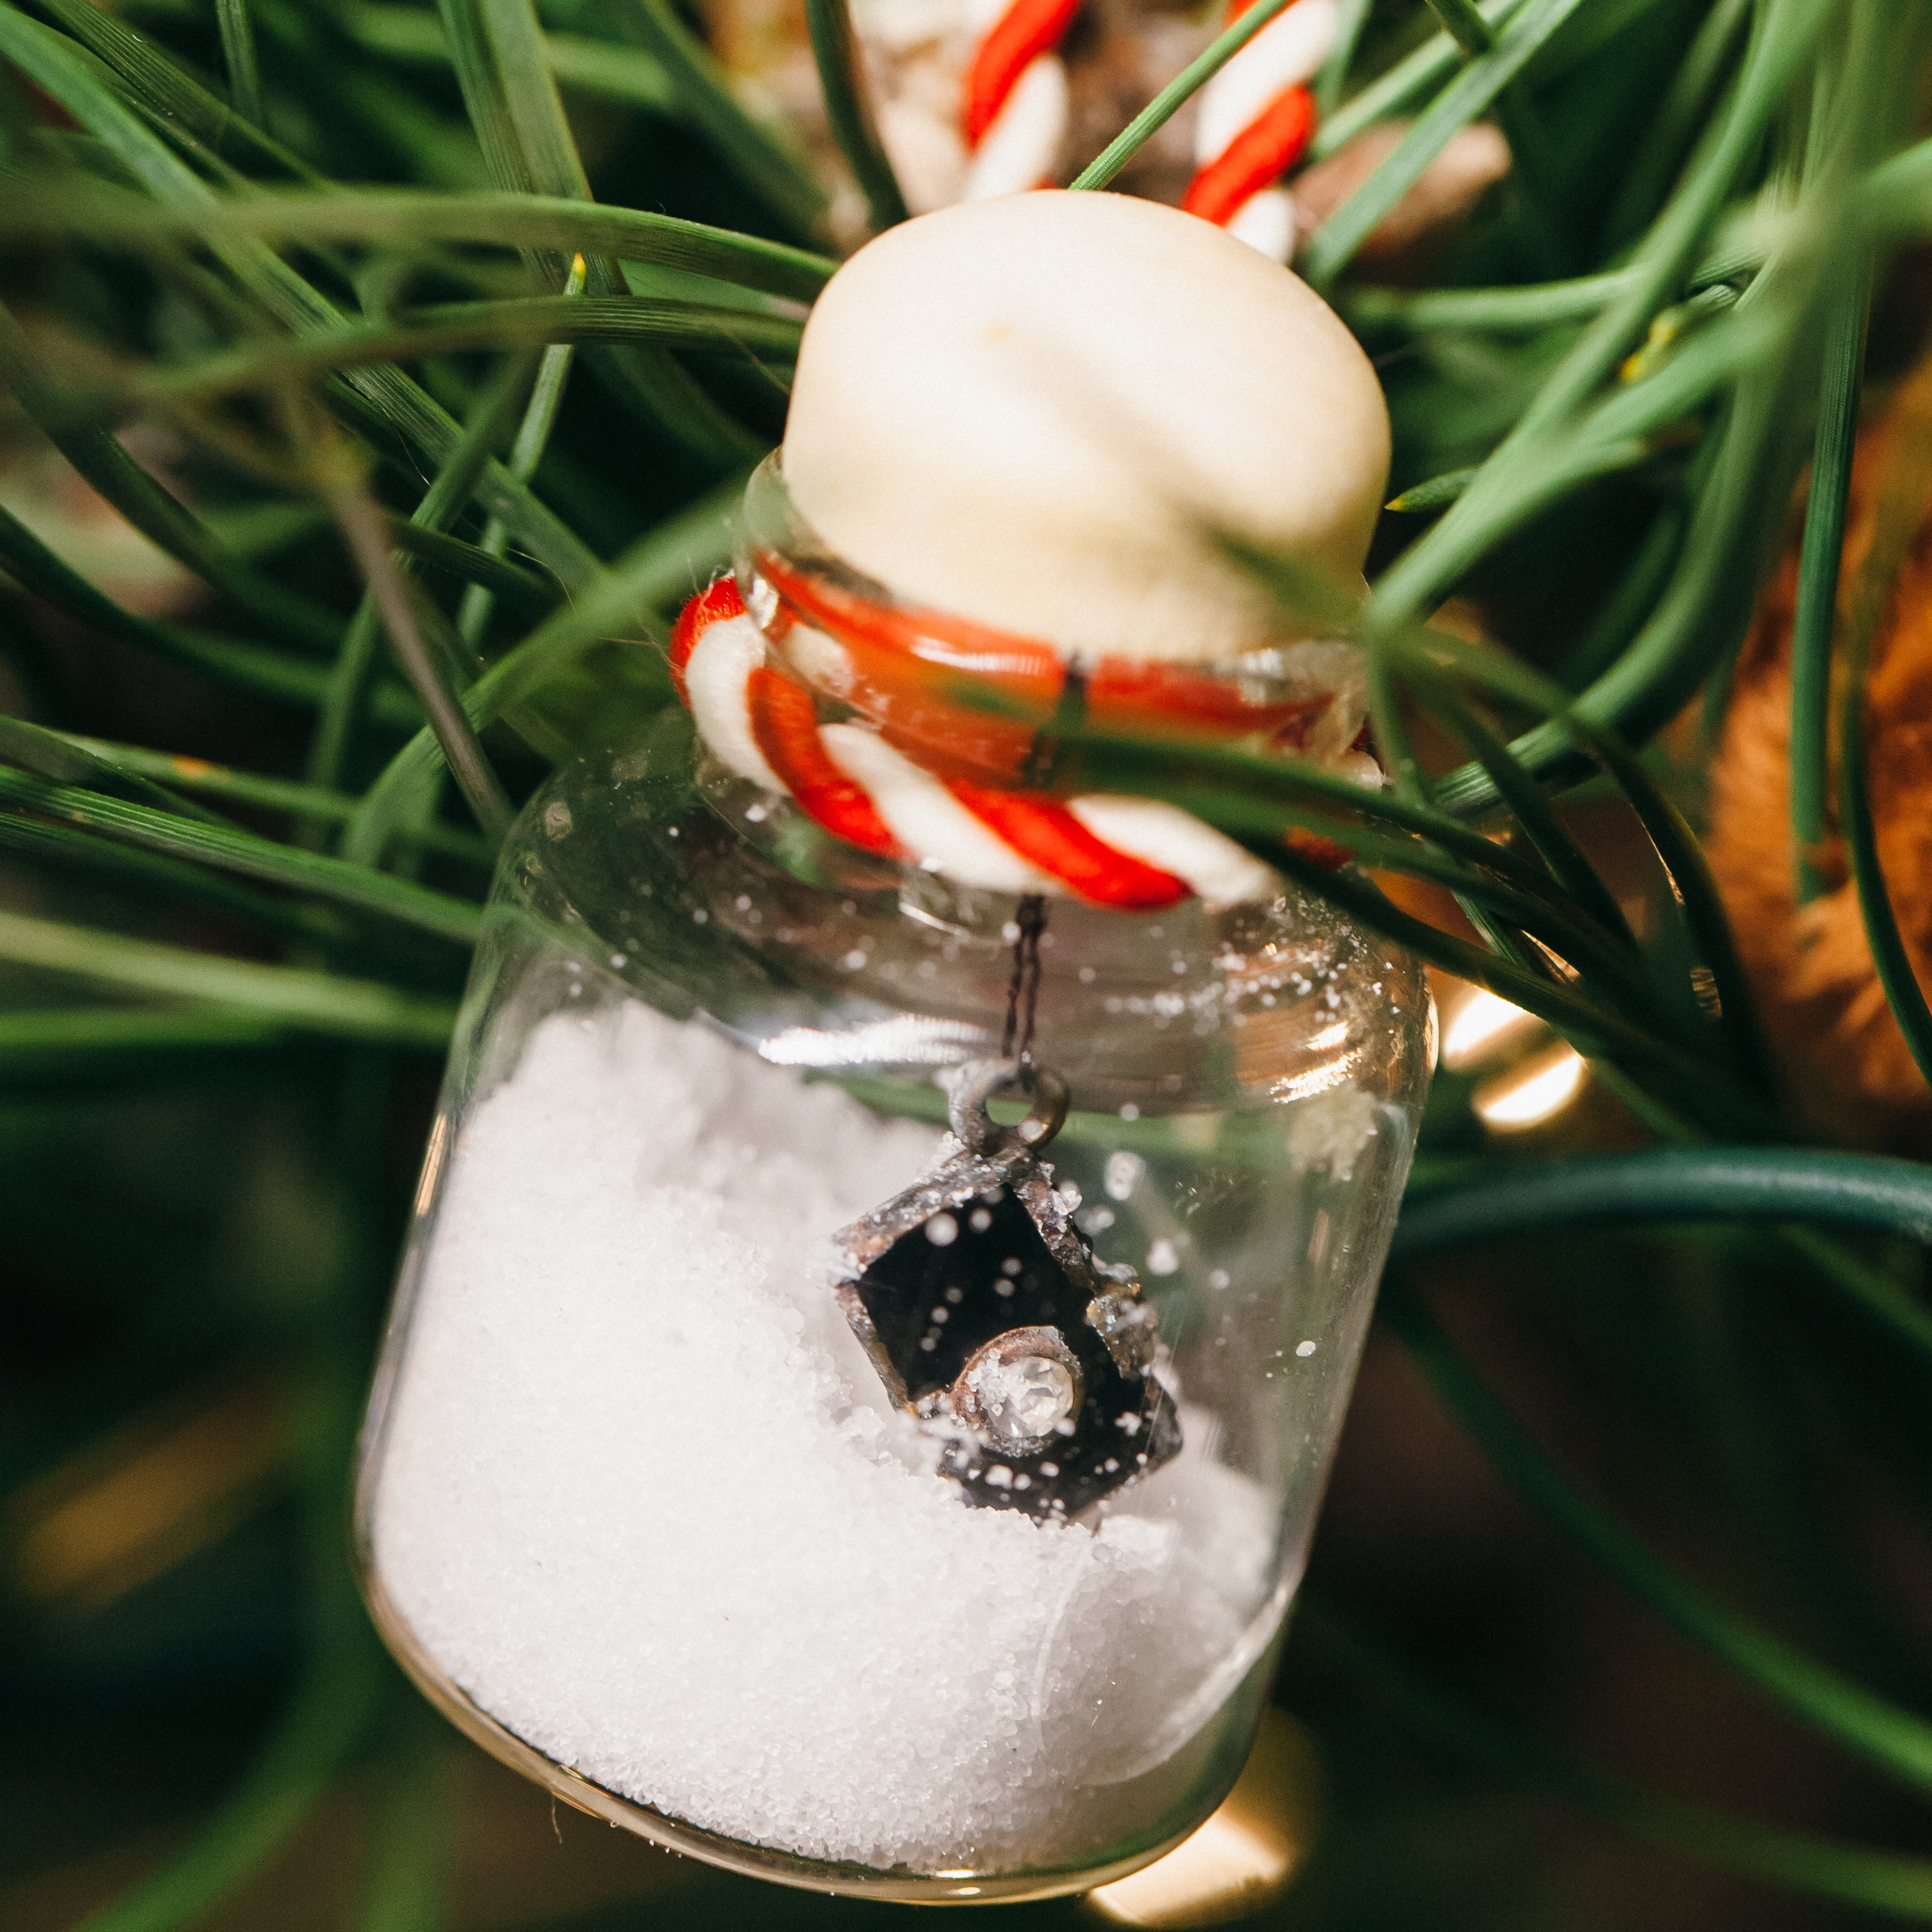 Half-filled Clear Glass Ornament With Miniature Camera